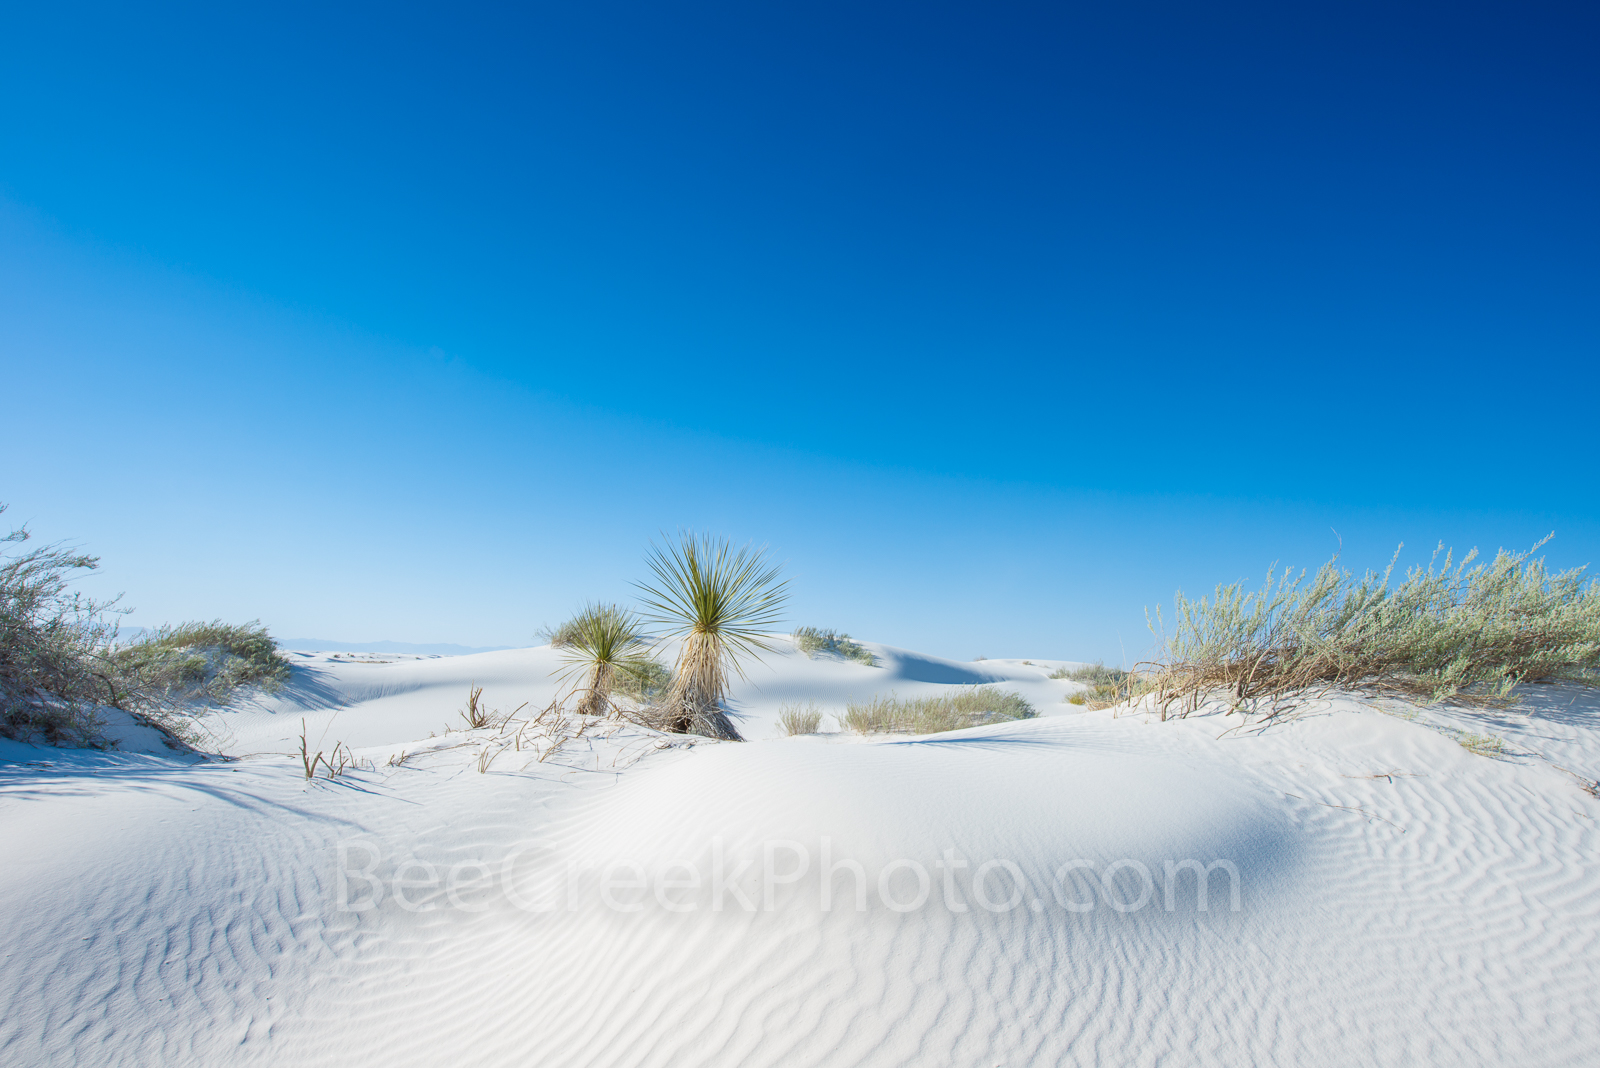 Alamagorda nm, New Mexico, New Mexico Parks, White Sand National Monument, Yucca in White sands, landscape, New Mexico landscape, white sands, dunes, flow of sand, gypsum, images of White Sands, magni, photo